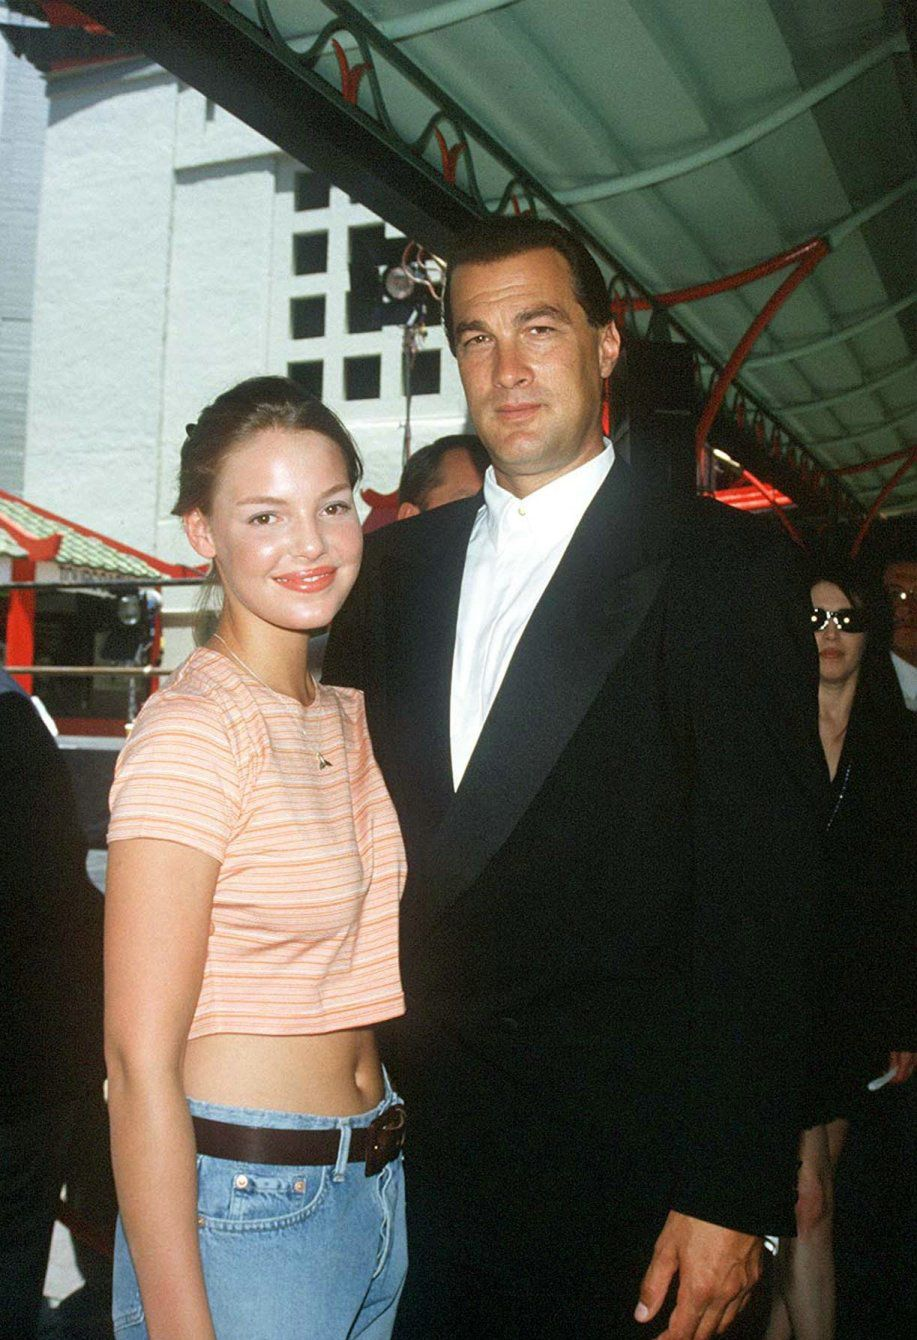 Actors Porn Born 1995 katherine heigl and steven seagal outside the chinese